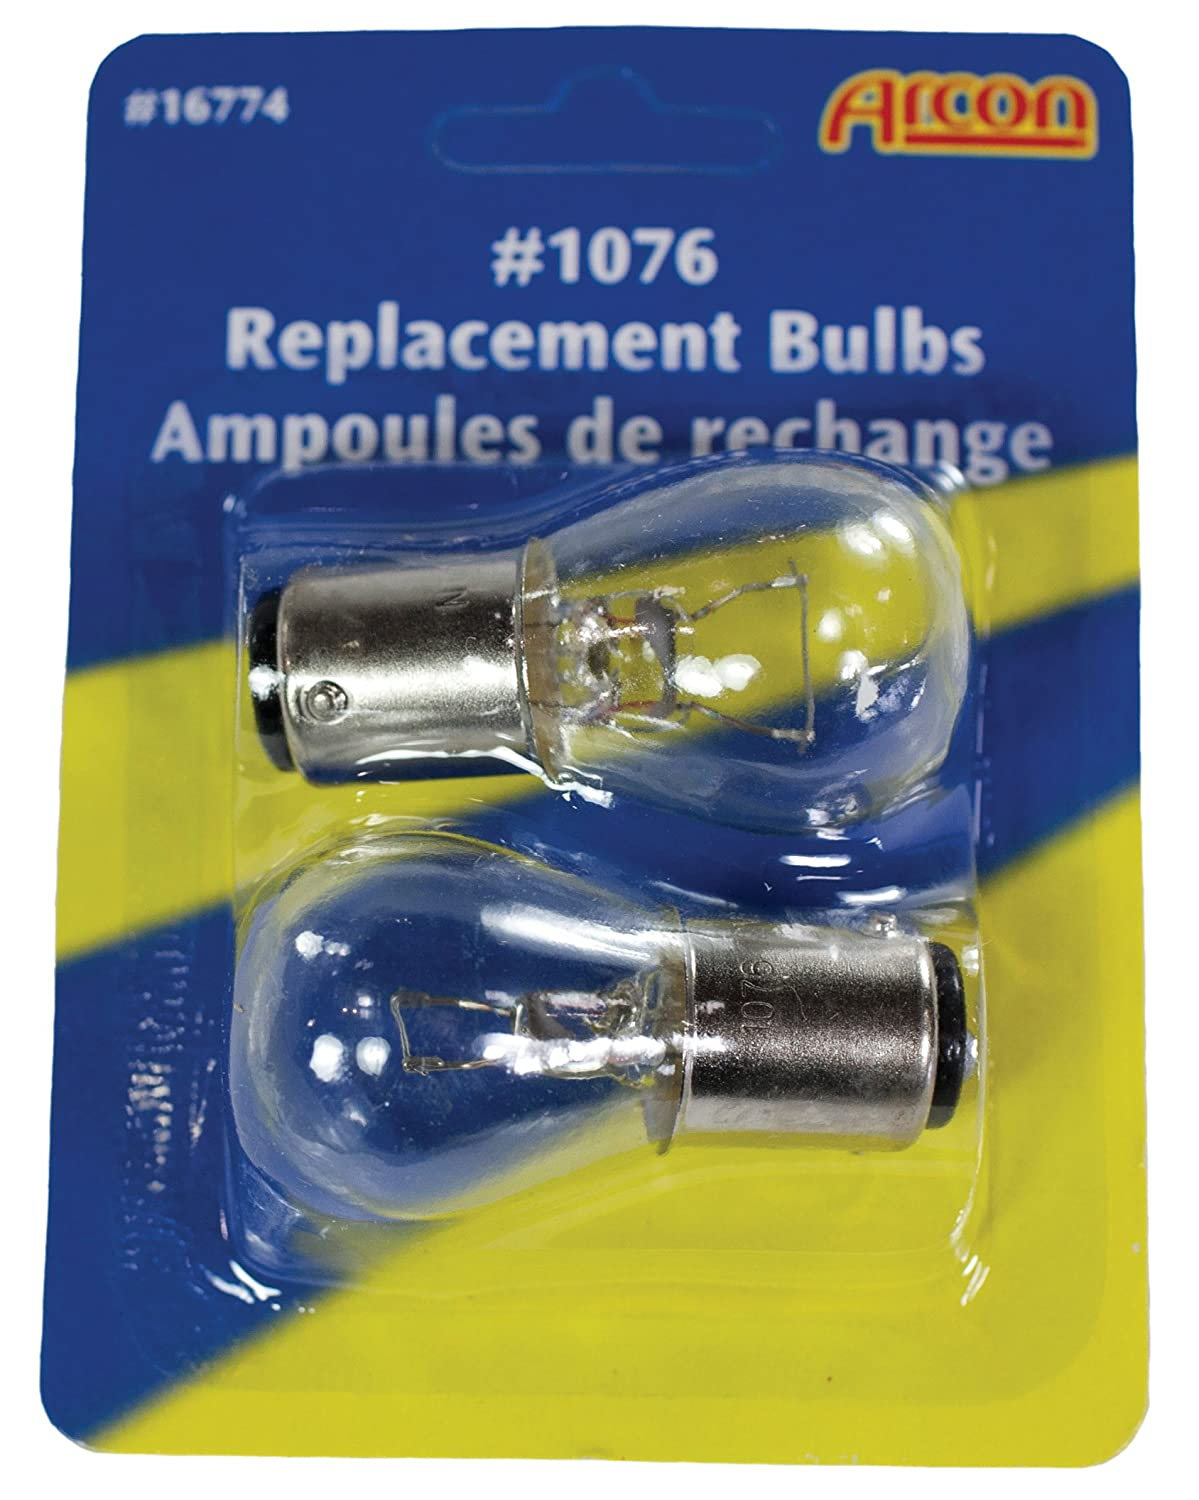 Pack of 2 Arcon 16774 Replacement Bulb #1076,